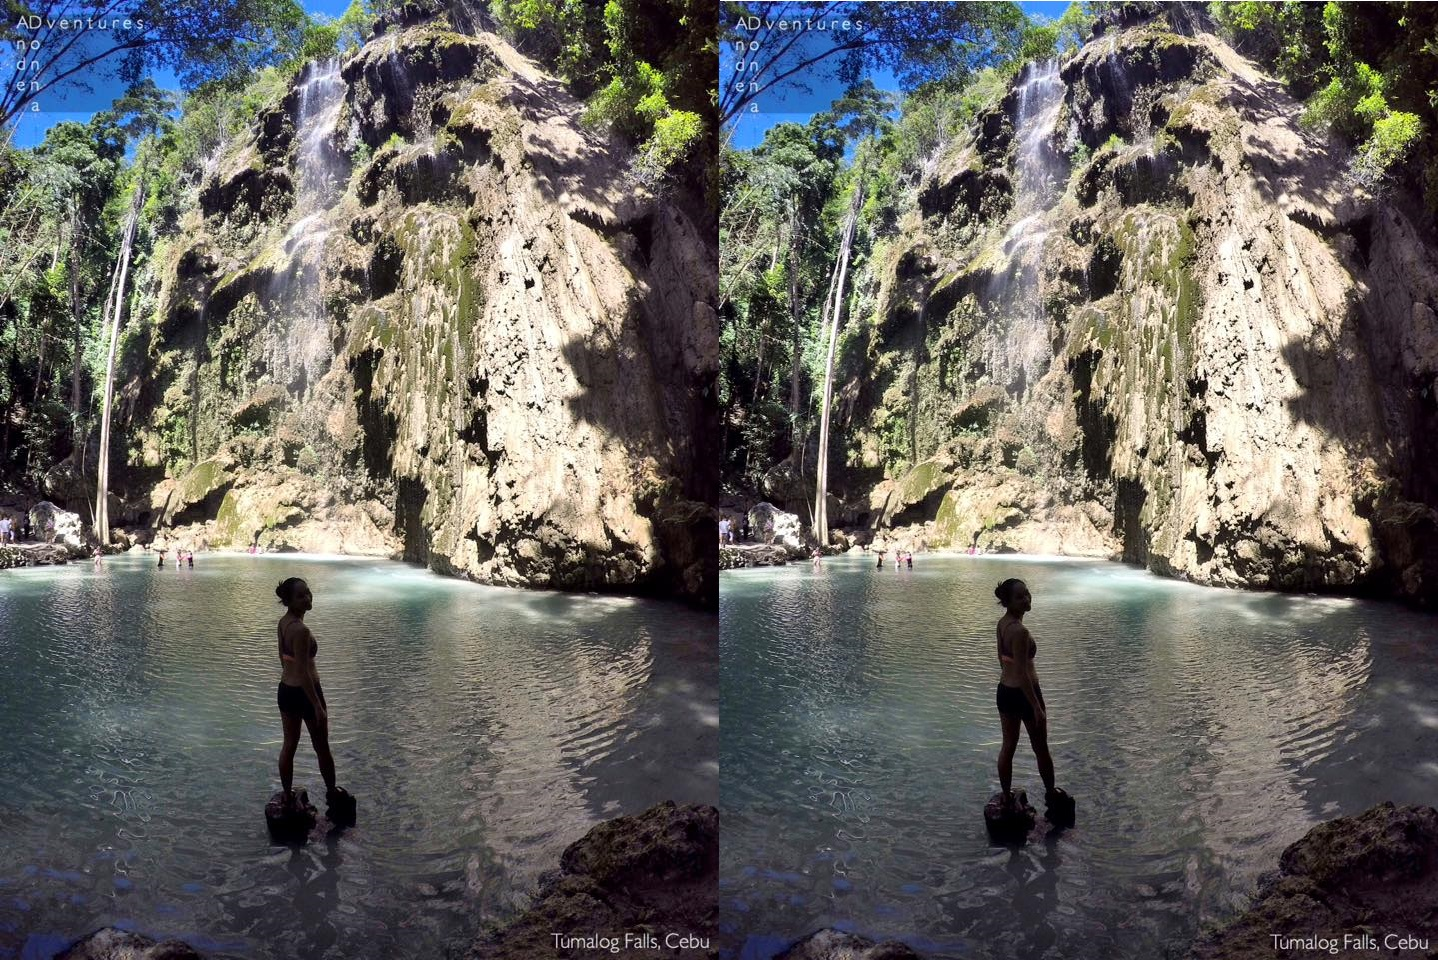 Tumalog Waterfalls in Cebu